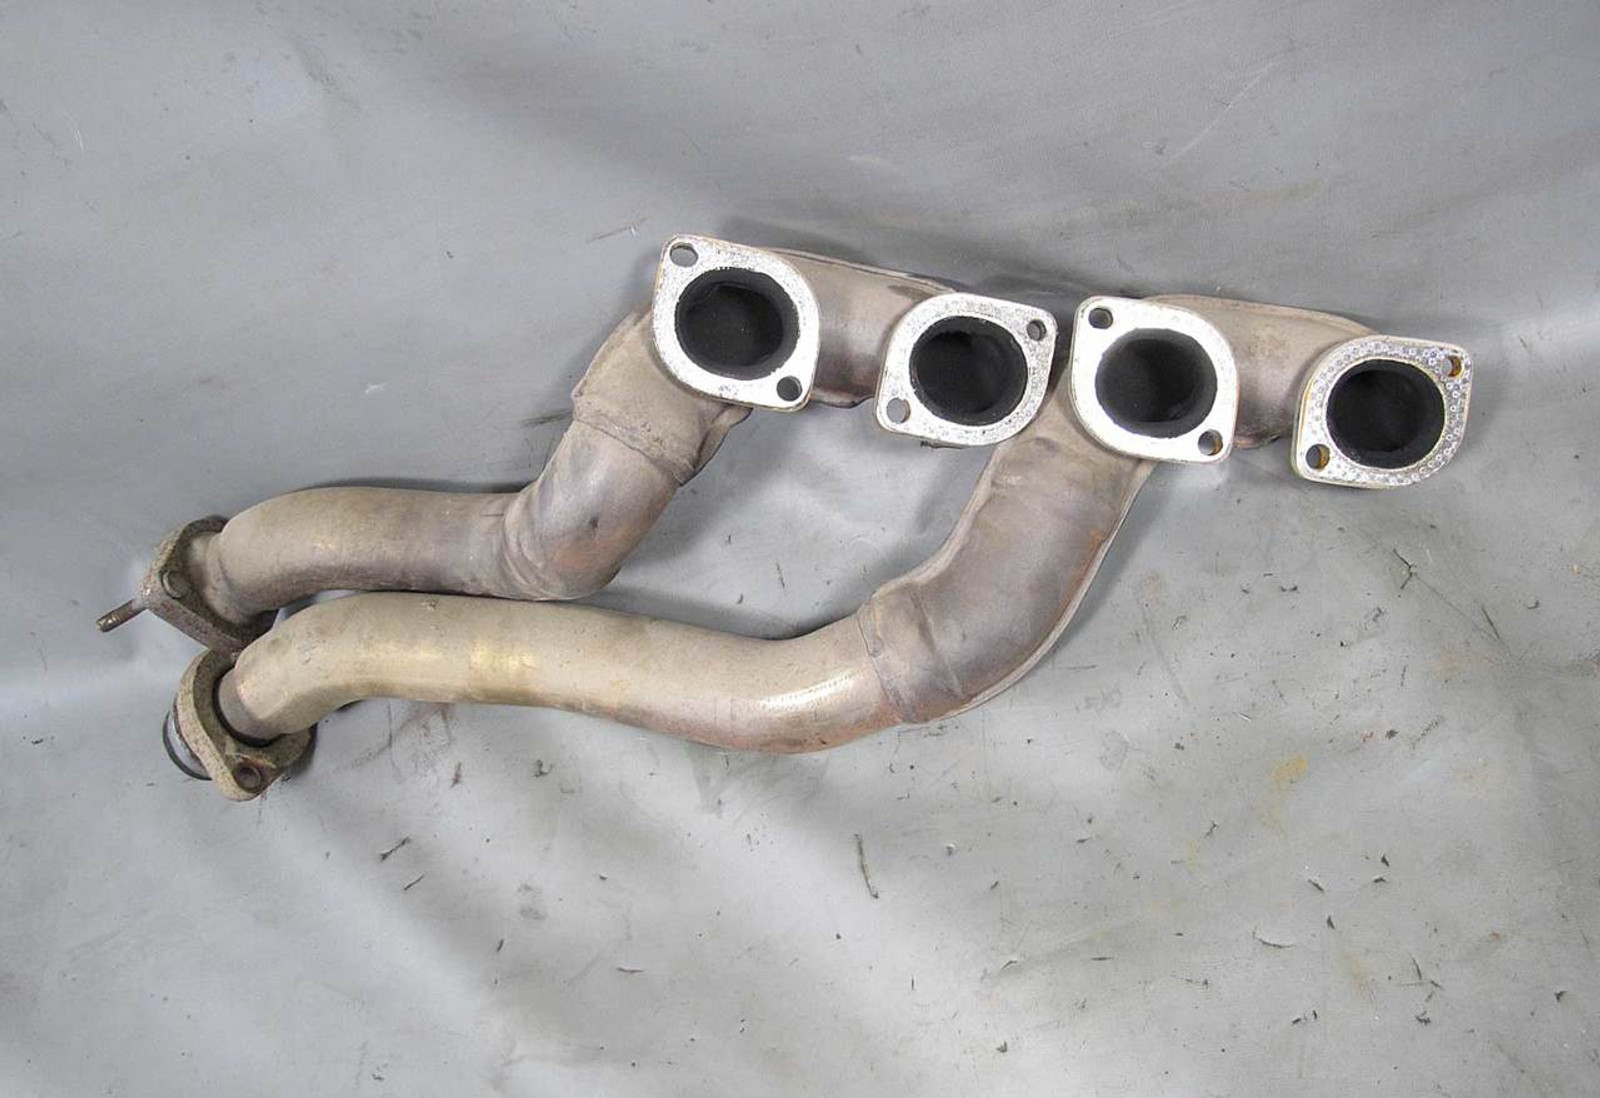 BMW M60 3 0L 4 0L V8 Bank 2 Factory Exhaust Manifold Pair Tubular 1994-1997  USED